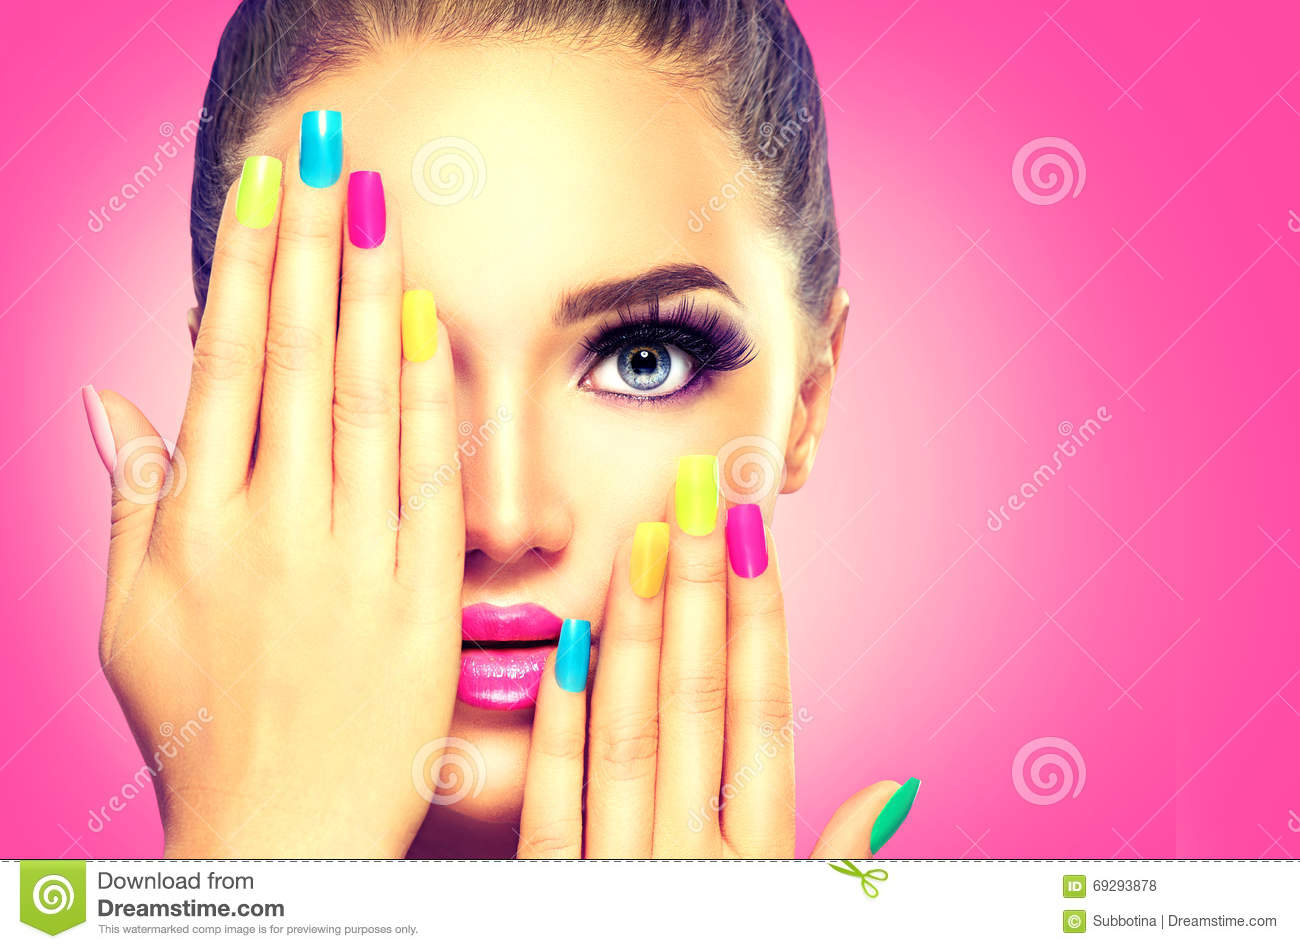 Beauty girl face with colorful nailpolish